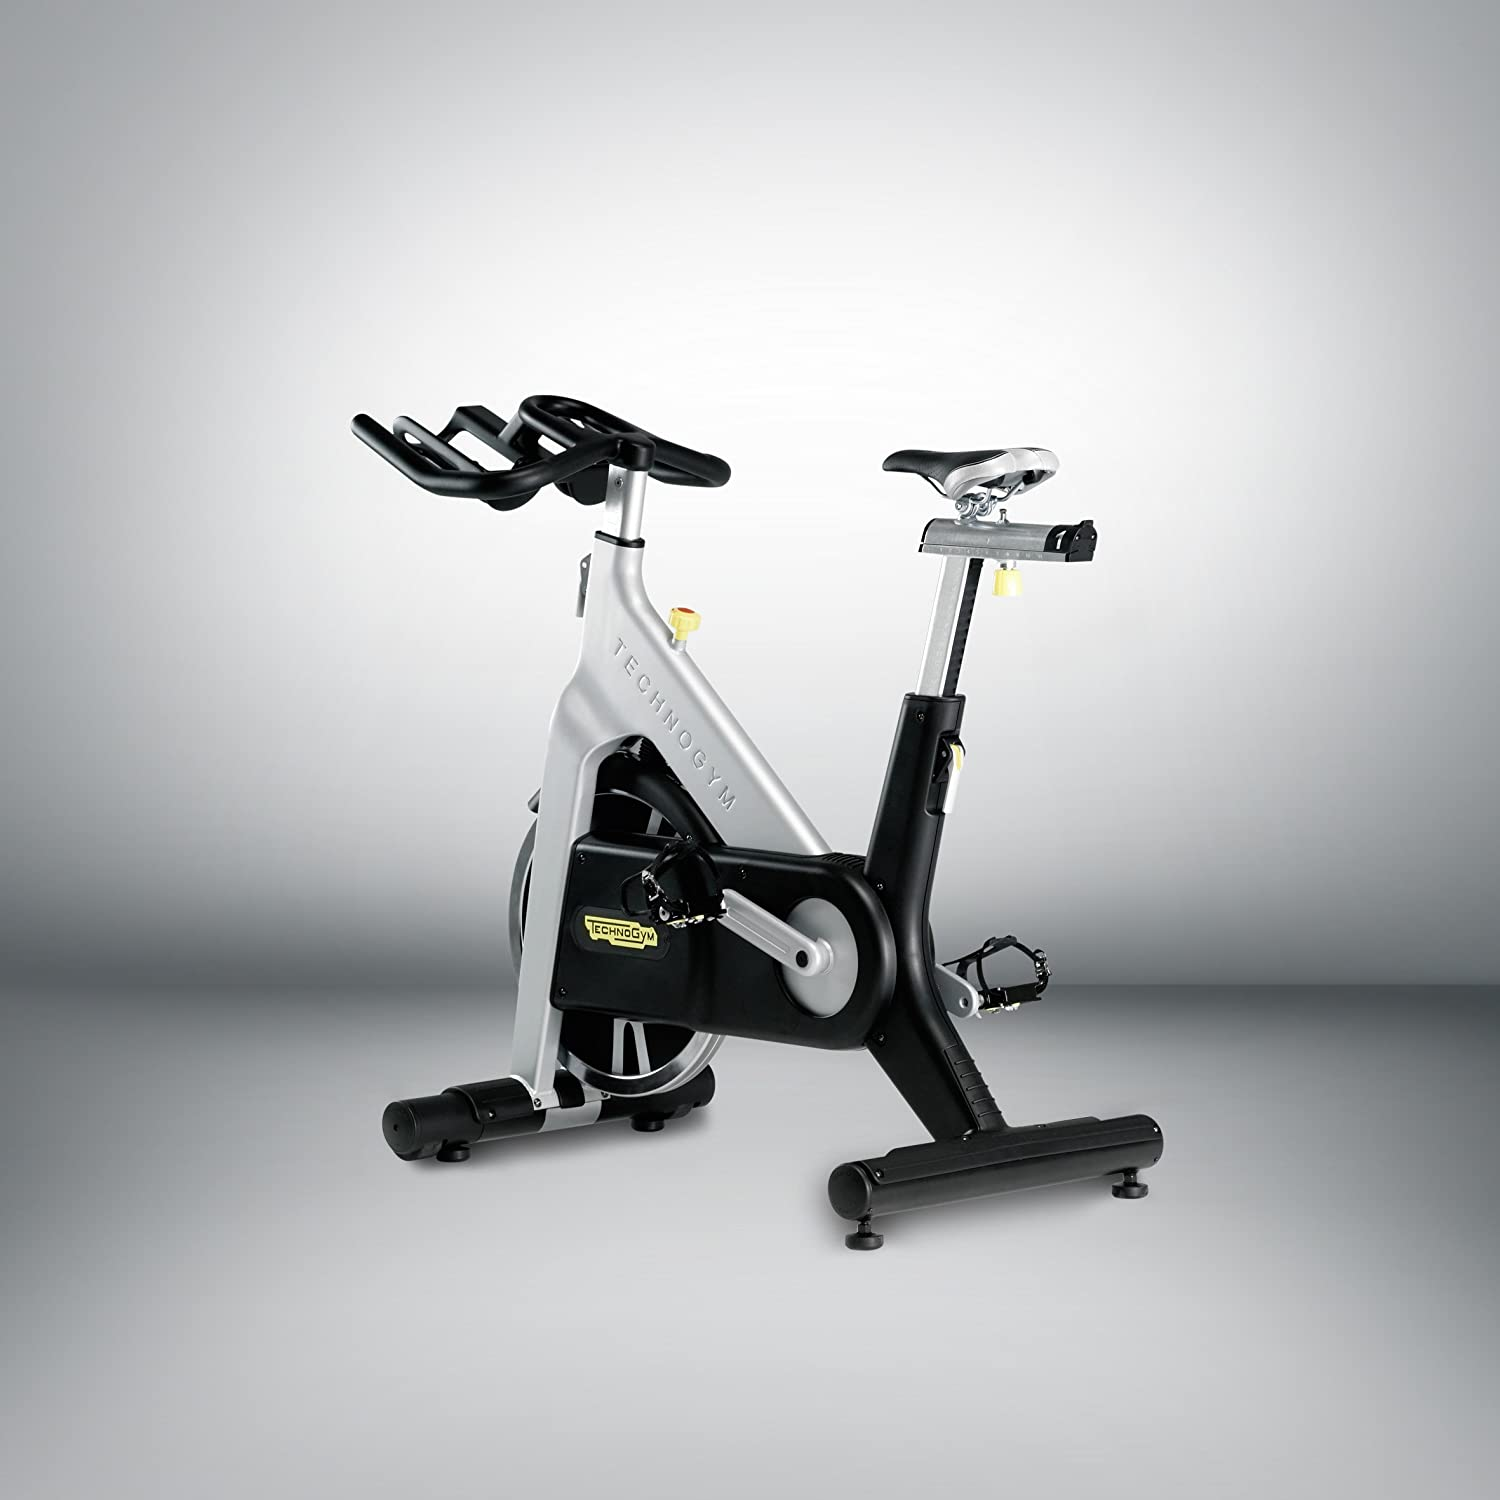 Technogym Group cycle, transmisión por cadena